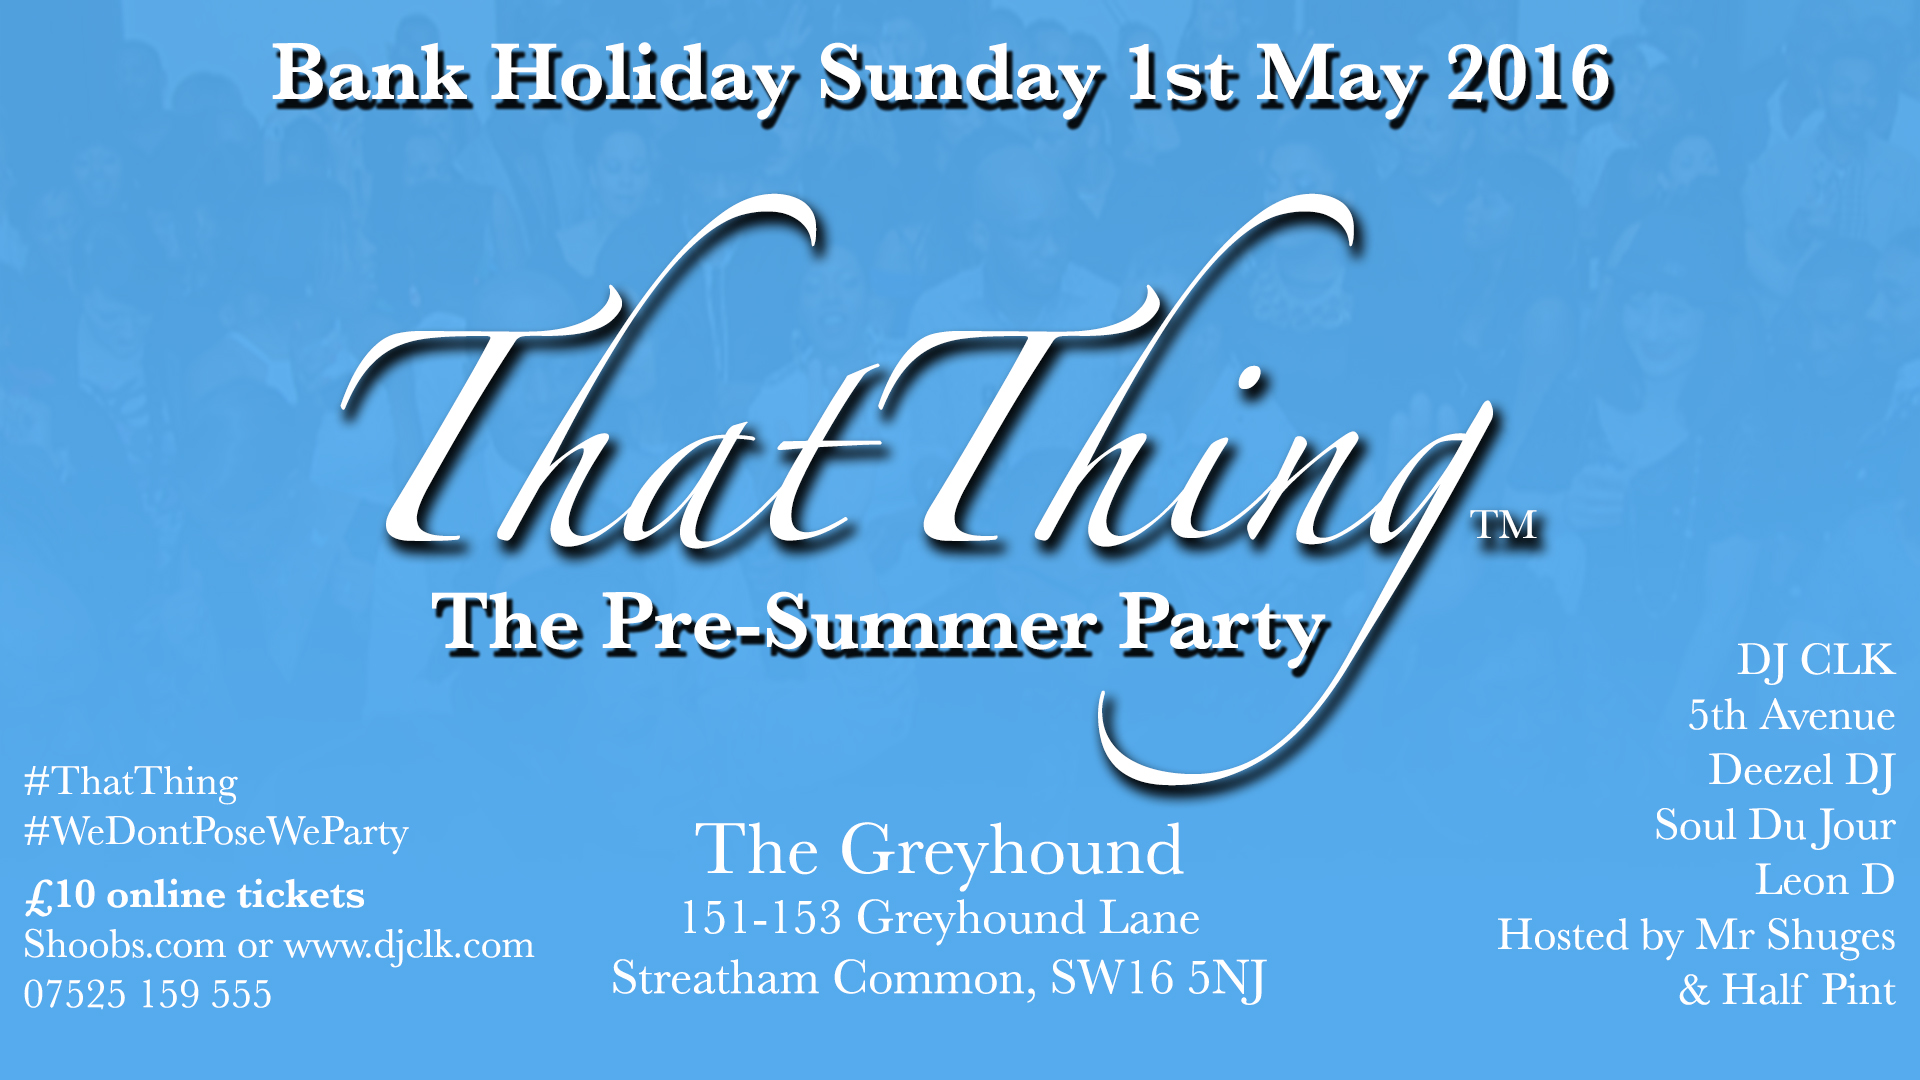 ThatThing The Pre-Summer Party : Sun 1st May